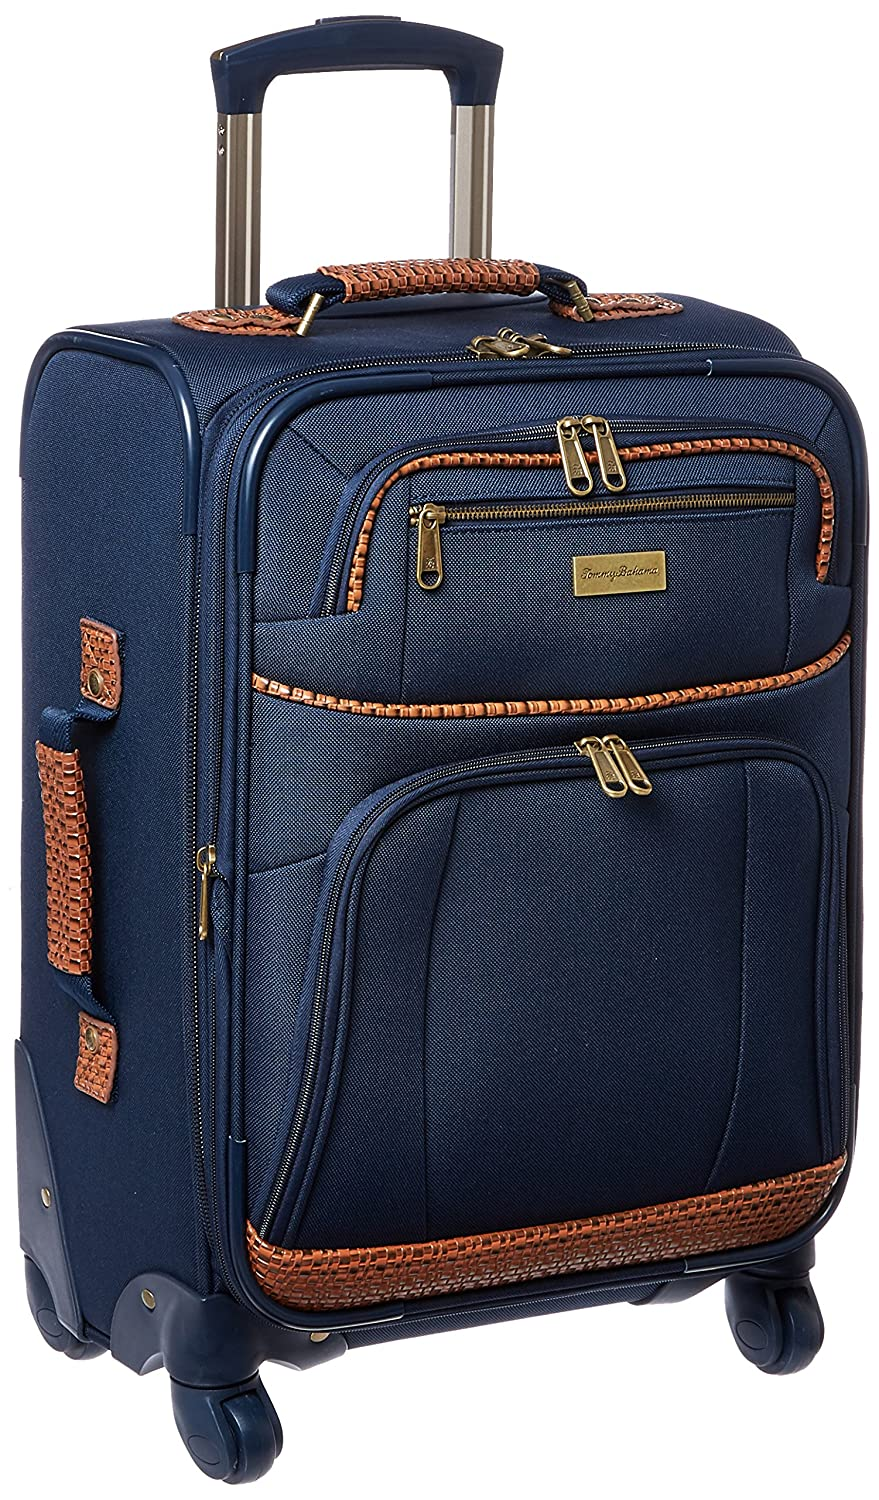 Image of Luggage Tommy Bahama Carry On Luggage - 20 Inch Lightweight Expandable Rolling Spinner Luggage with Wheels Travel Suitcase